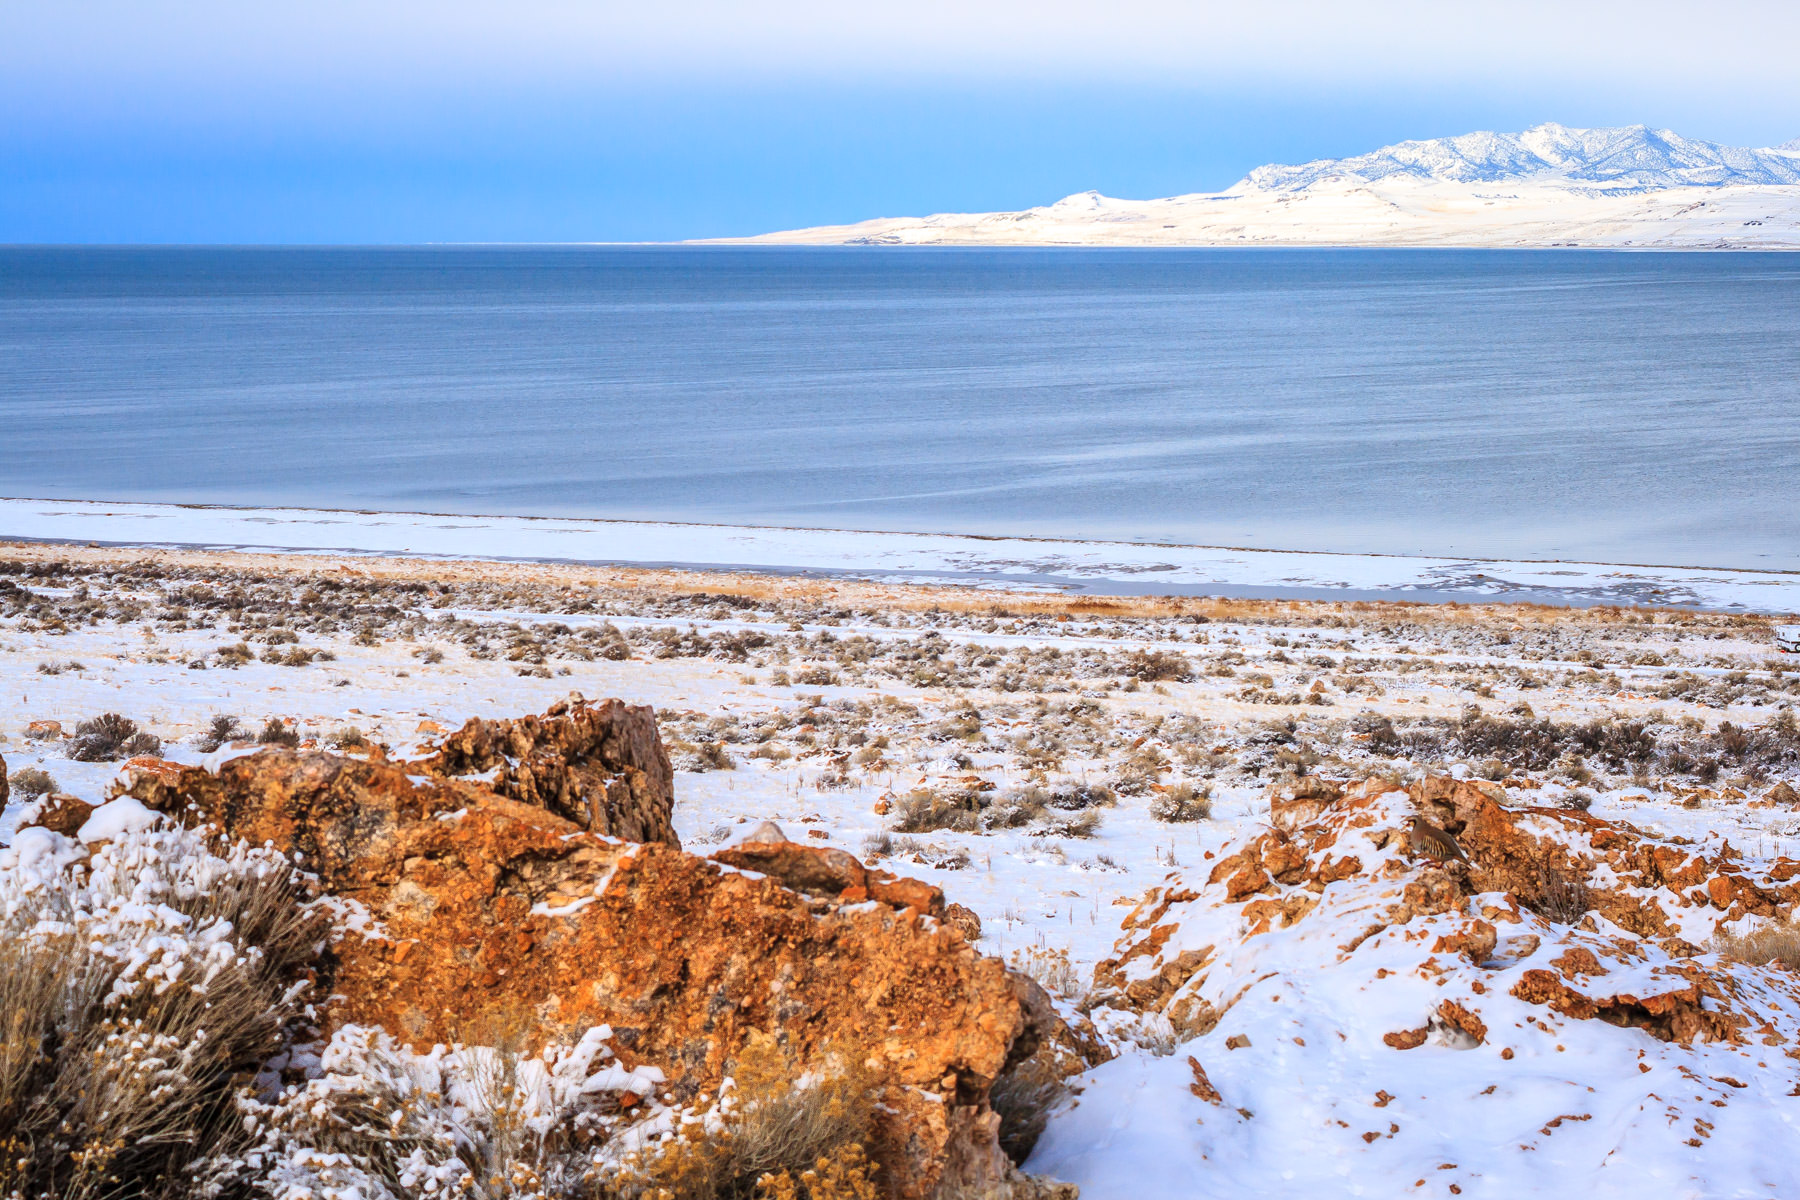 The brush-and-rock-covered winter shoreline of Antelope Island in Utah's Great Salt Lake